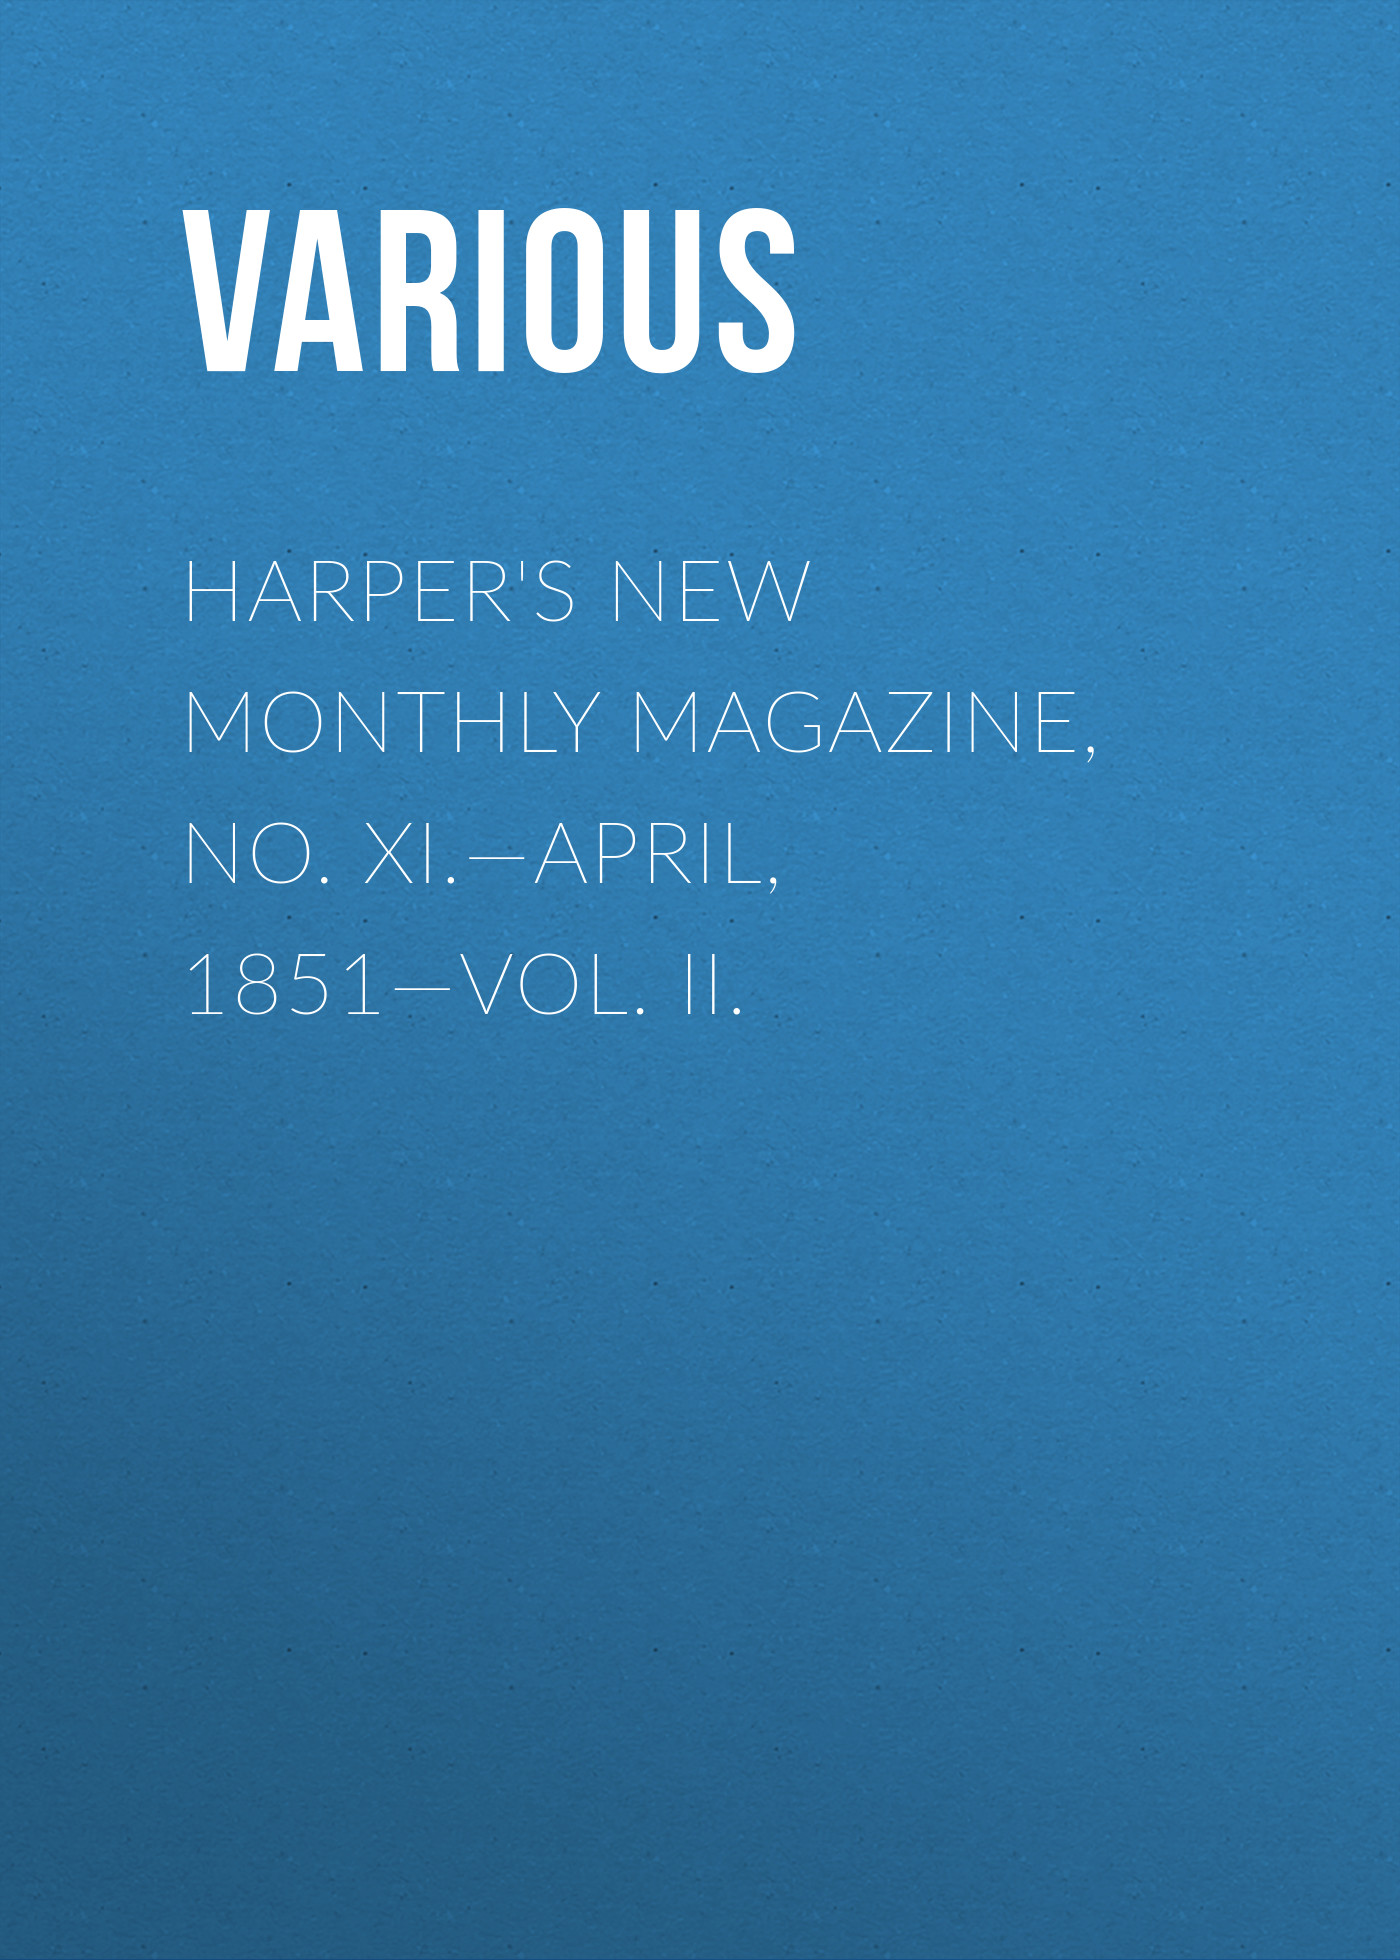 Various Harper's New Monthly Magazine, No. XI.—April, 1851—Vol. II. various harper s new monthly magazine vol iv no xx january 1852